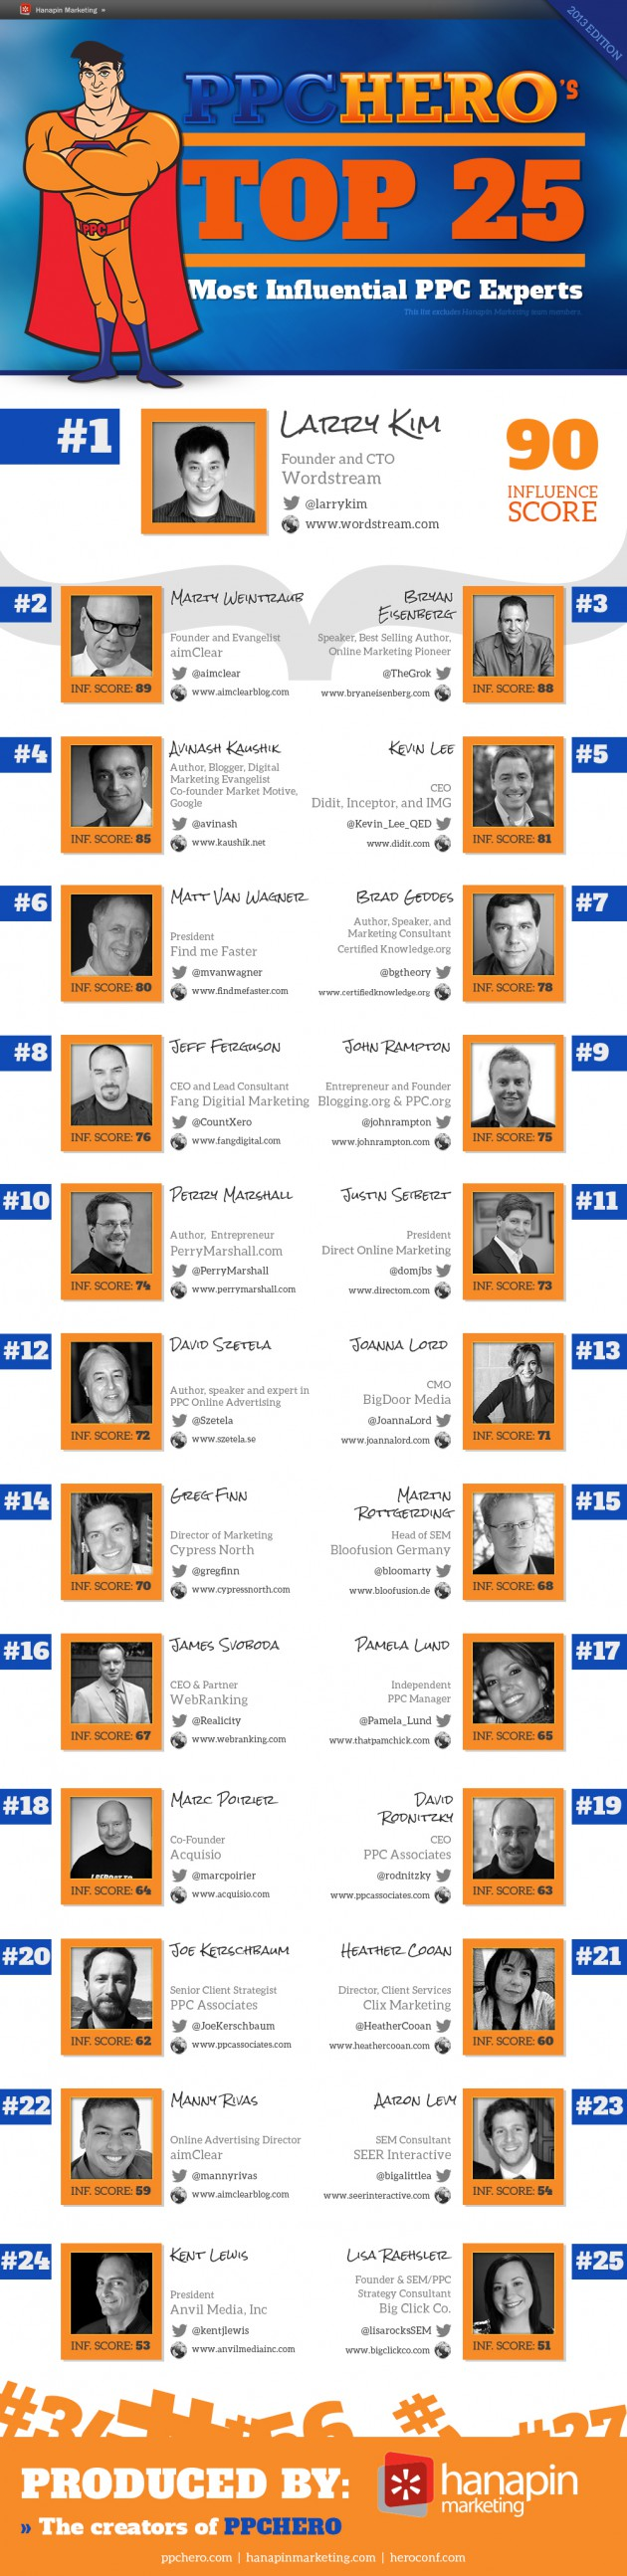 Top 25 Most Influential PPC Experts - 2013